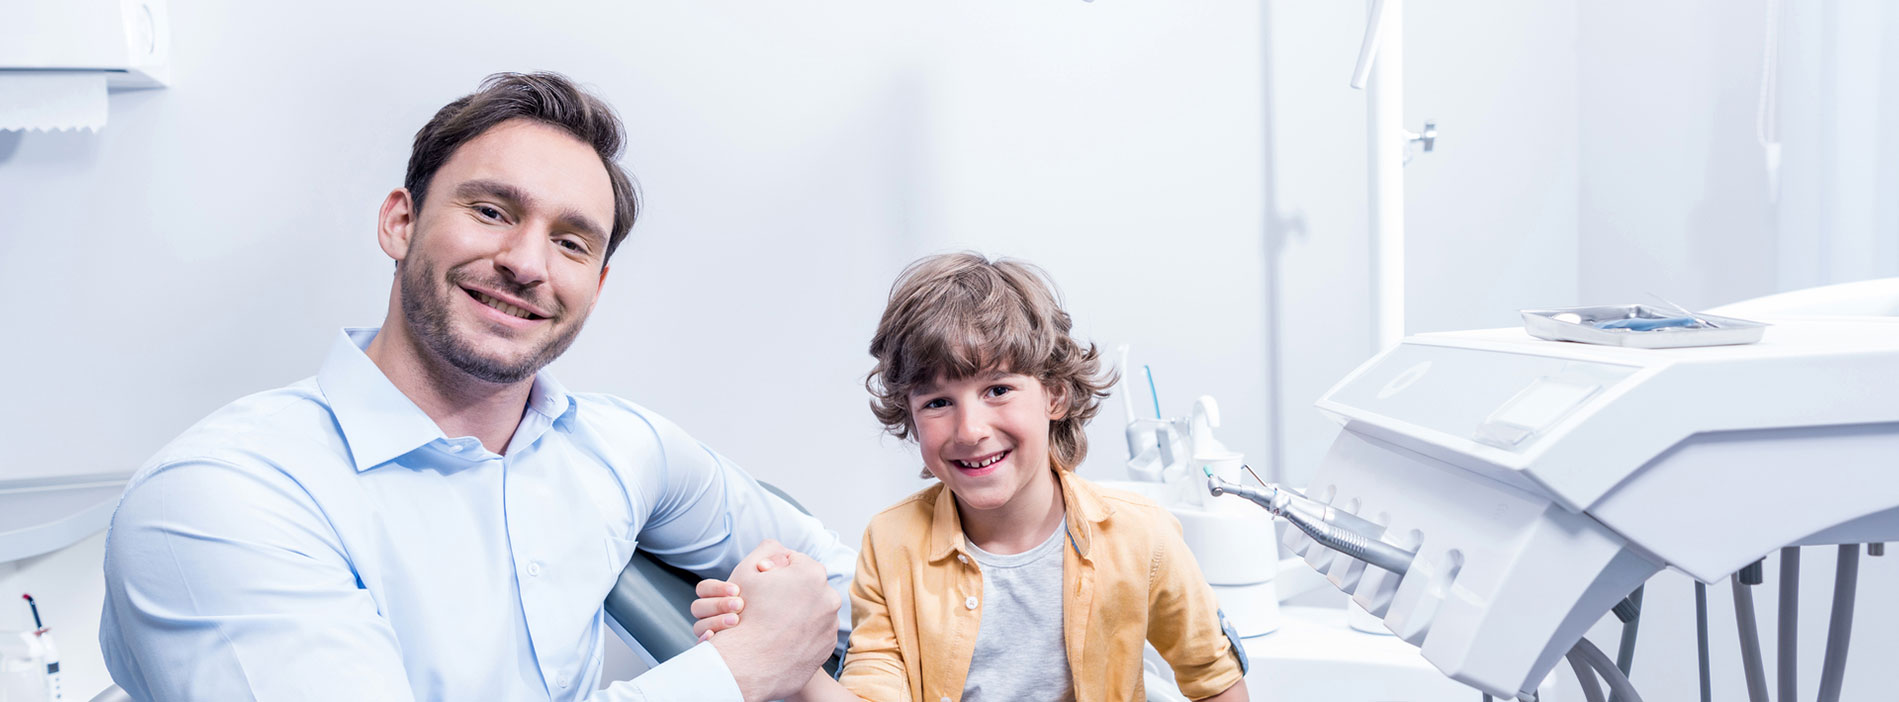 Dentist smiling with a kid